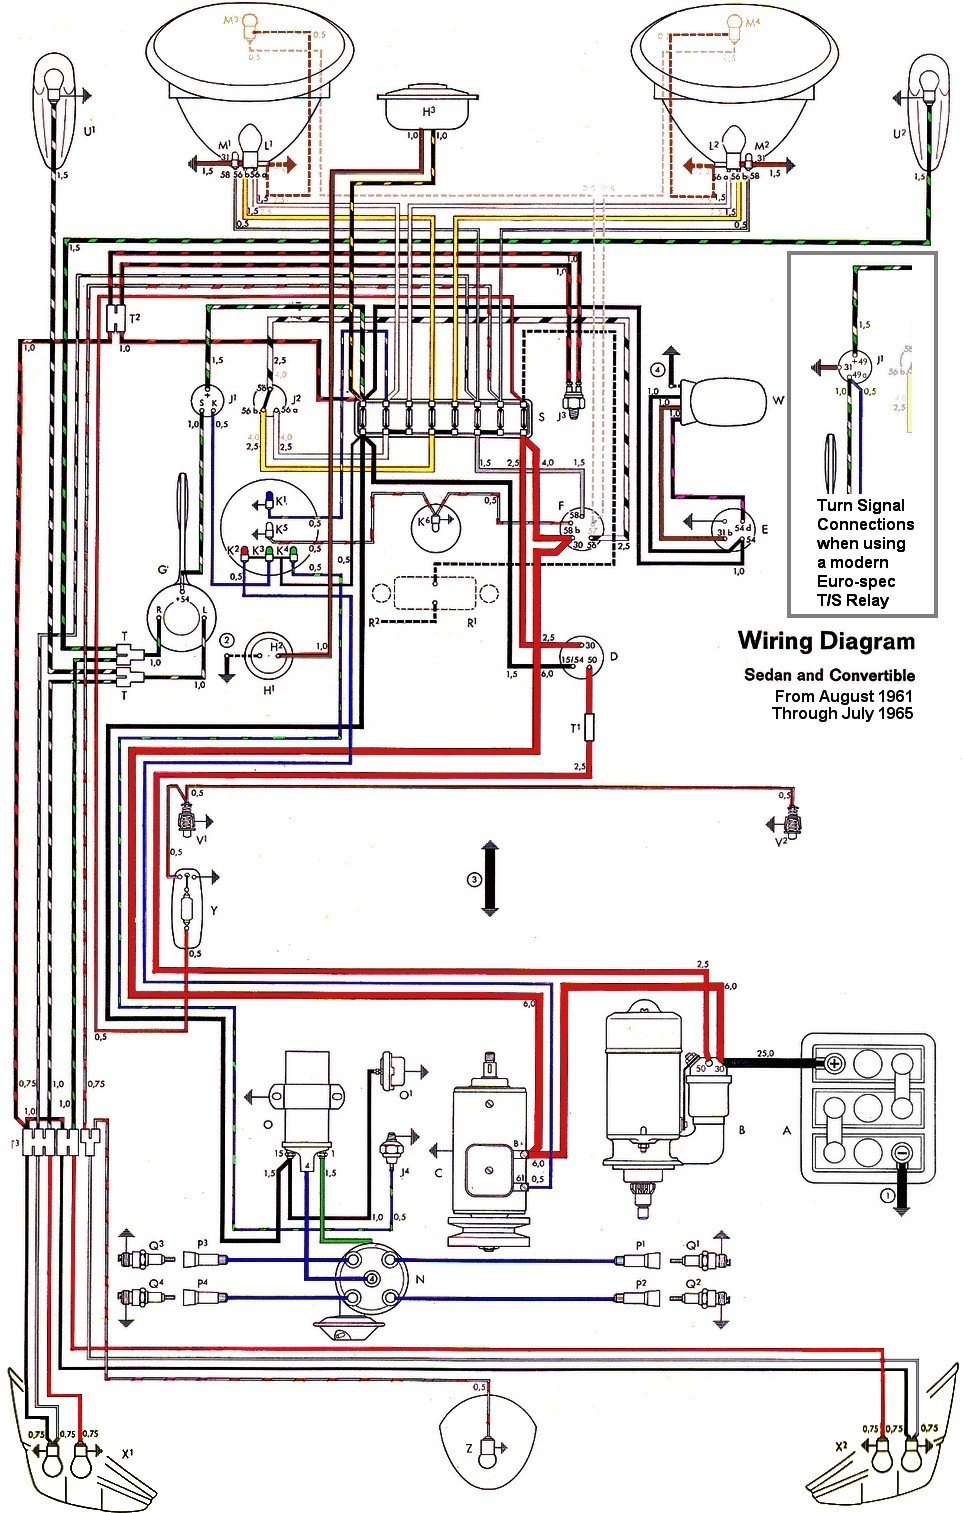 bug_62 65withinset vw wiring harness diagram cj7 wiring harness diagram \u2022 wiring Wiring Harness Diagram at gsmx.co